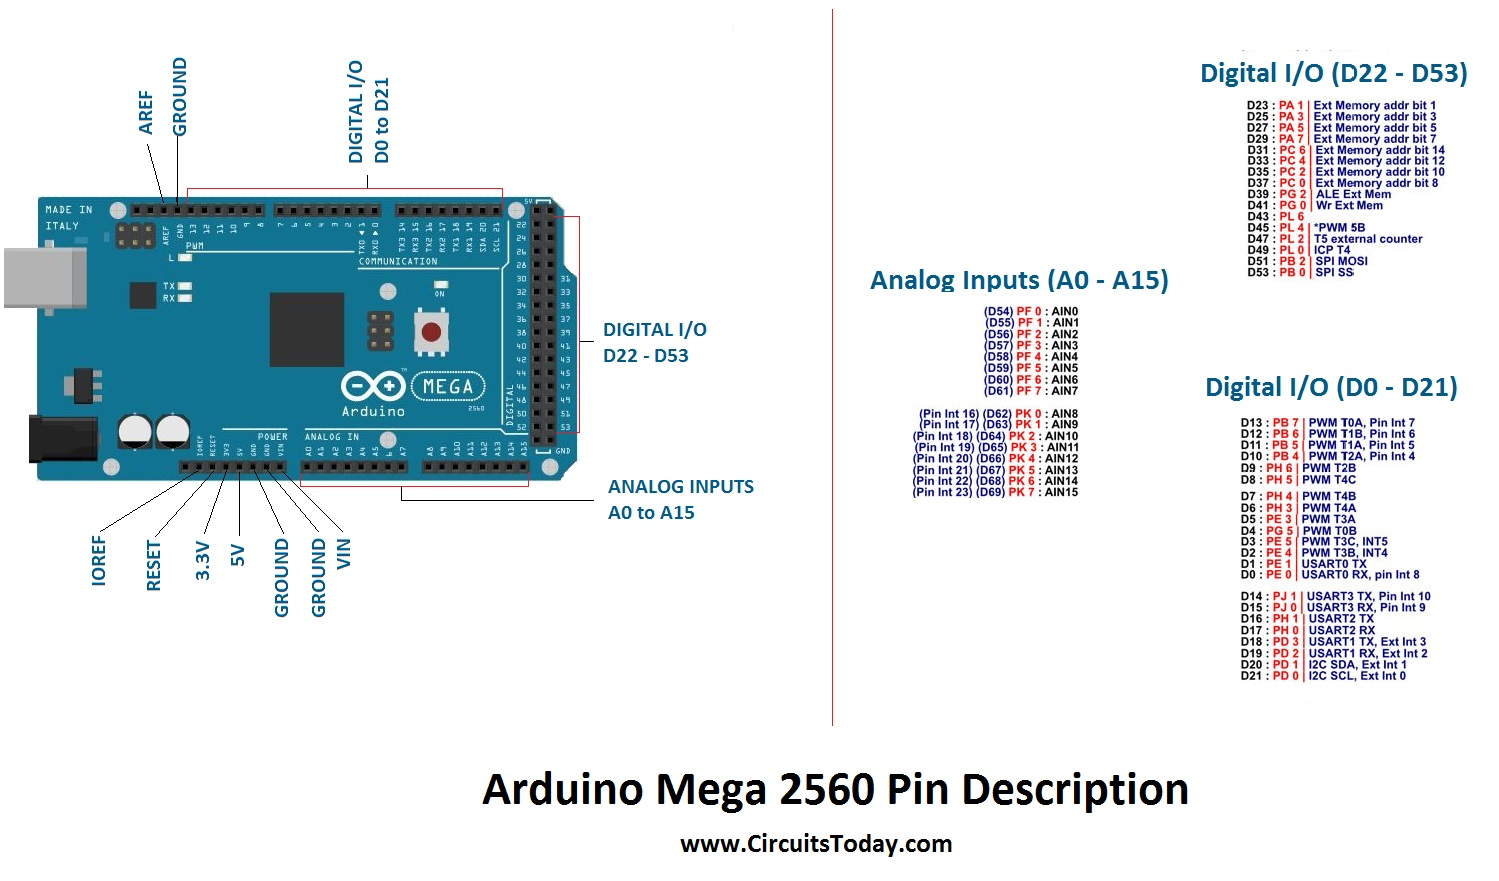 Arduino Circuit Diagram Explained Manual Of Wiring Tutorial Images Gallery Mega Pinout And Schematics 2560 Specifications Rh Circuitstoday Com